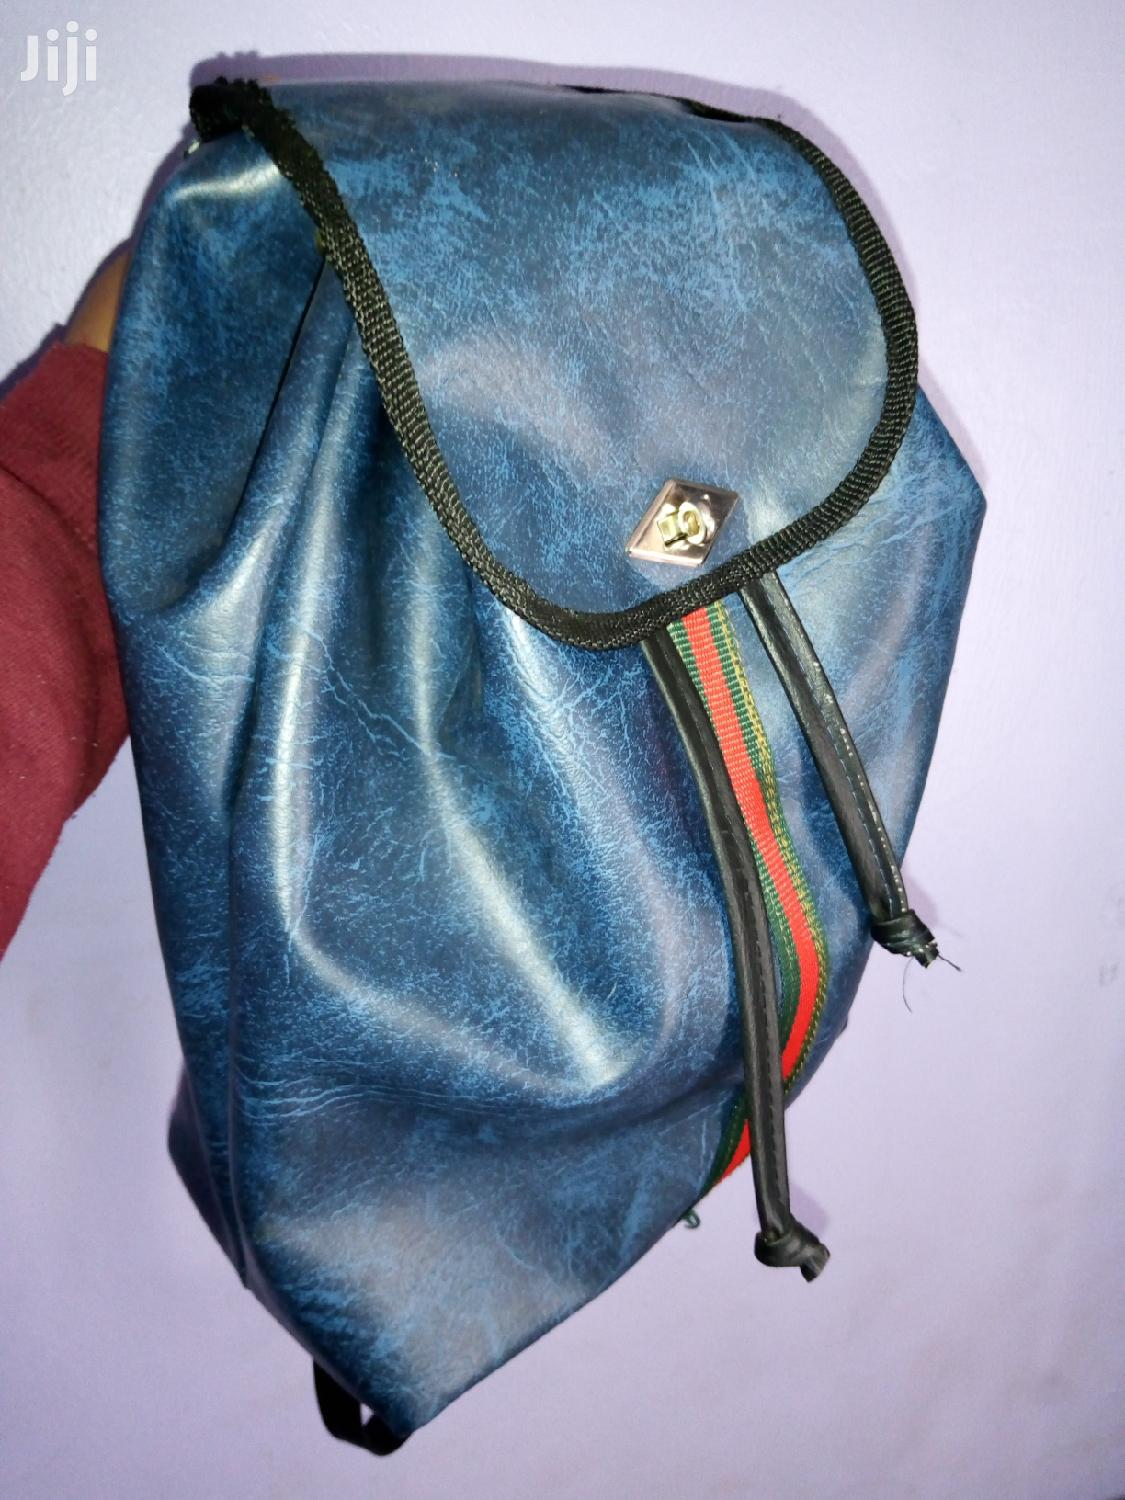 Archive: Gucci Monkey Bag